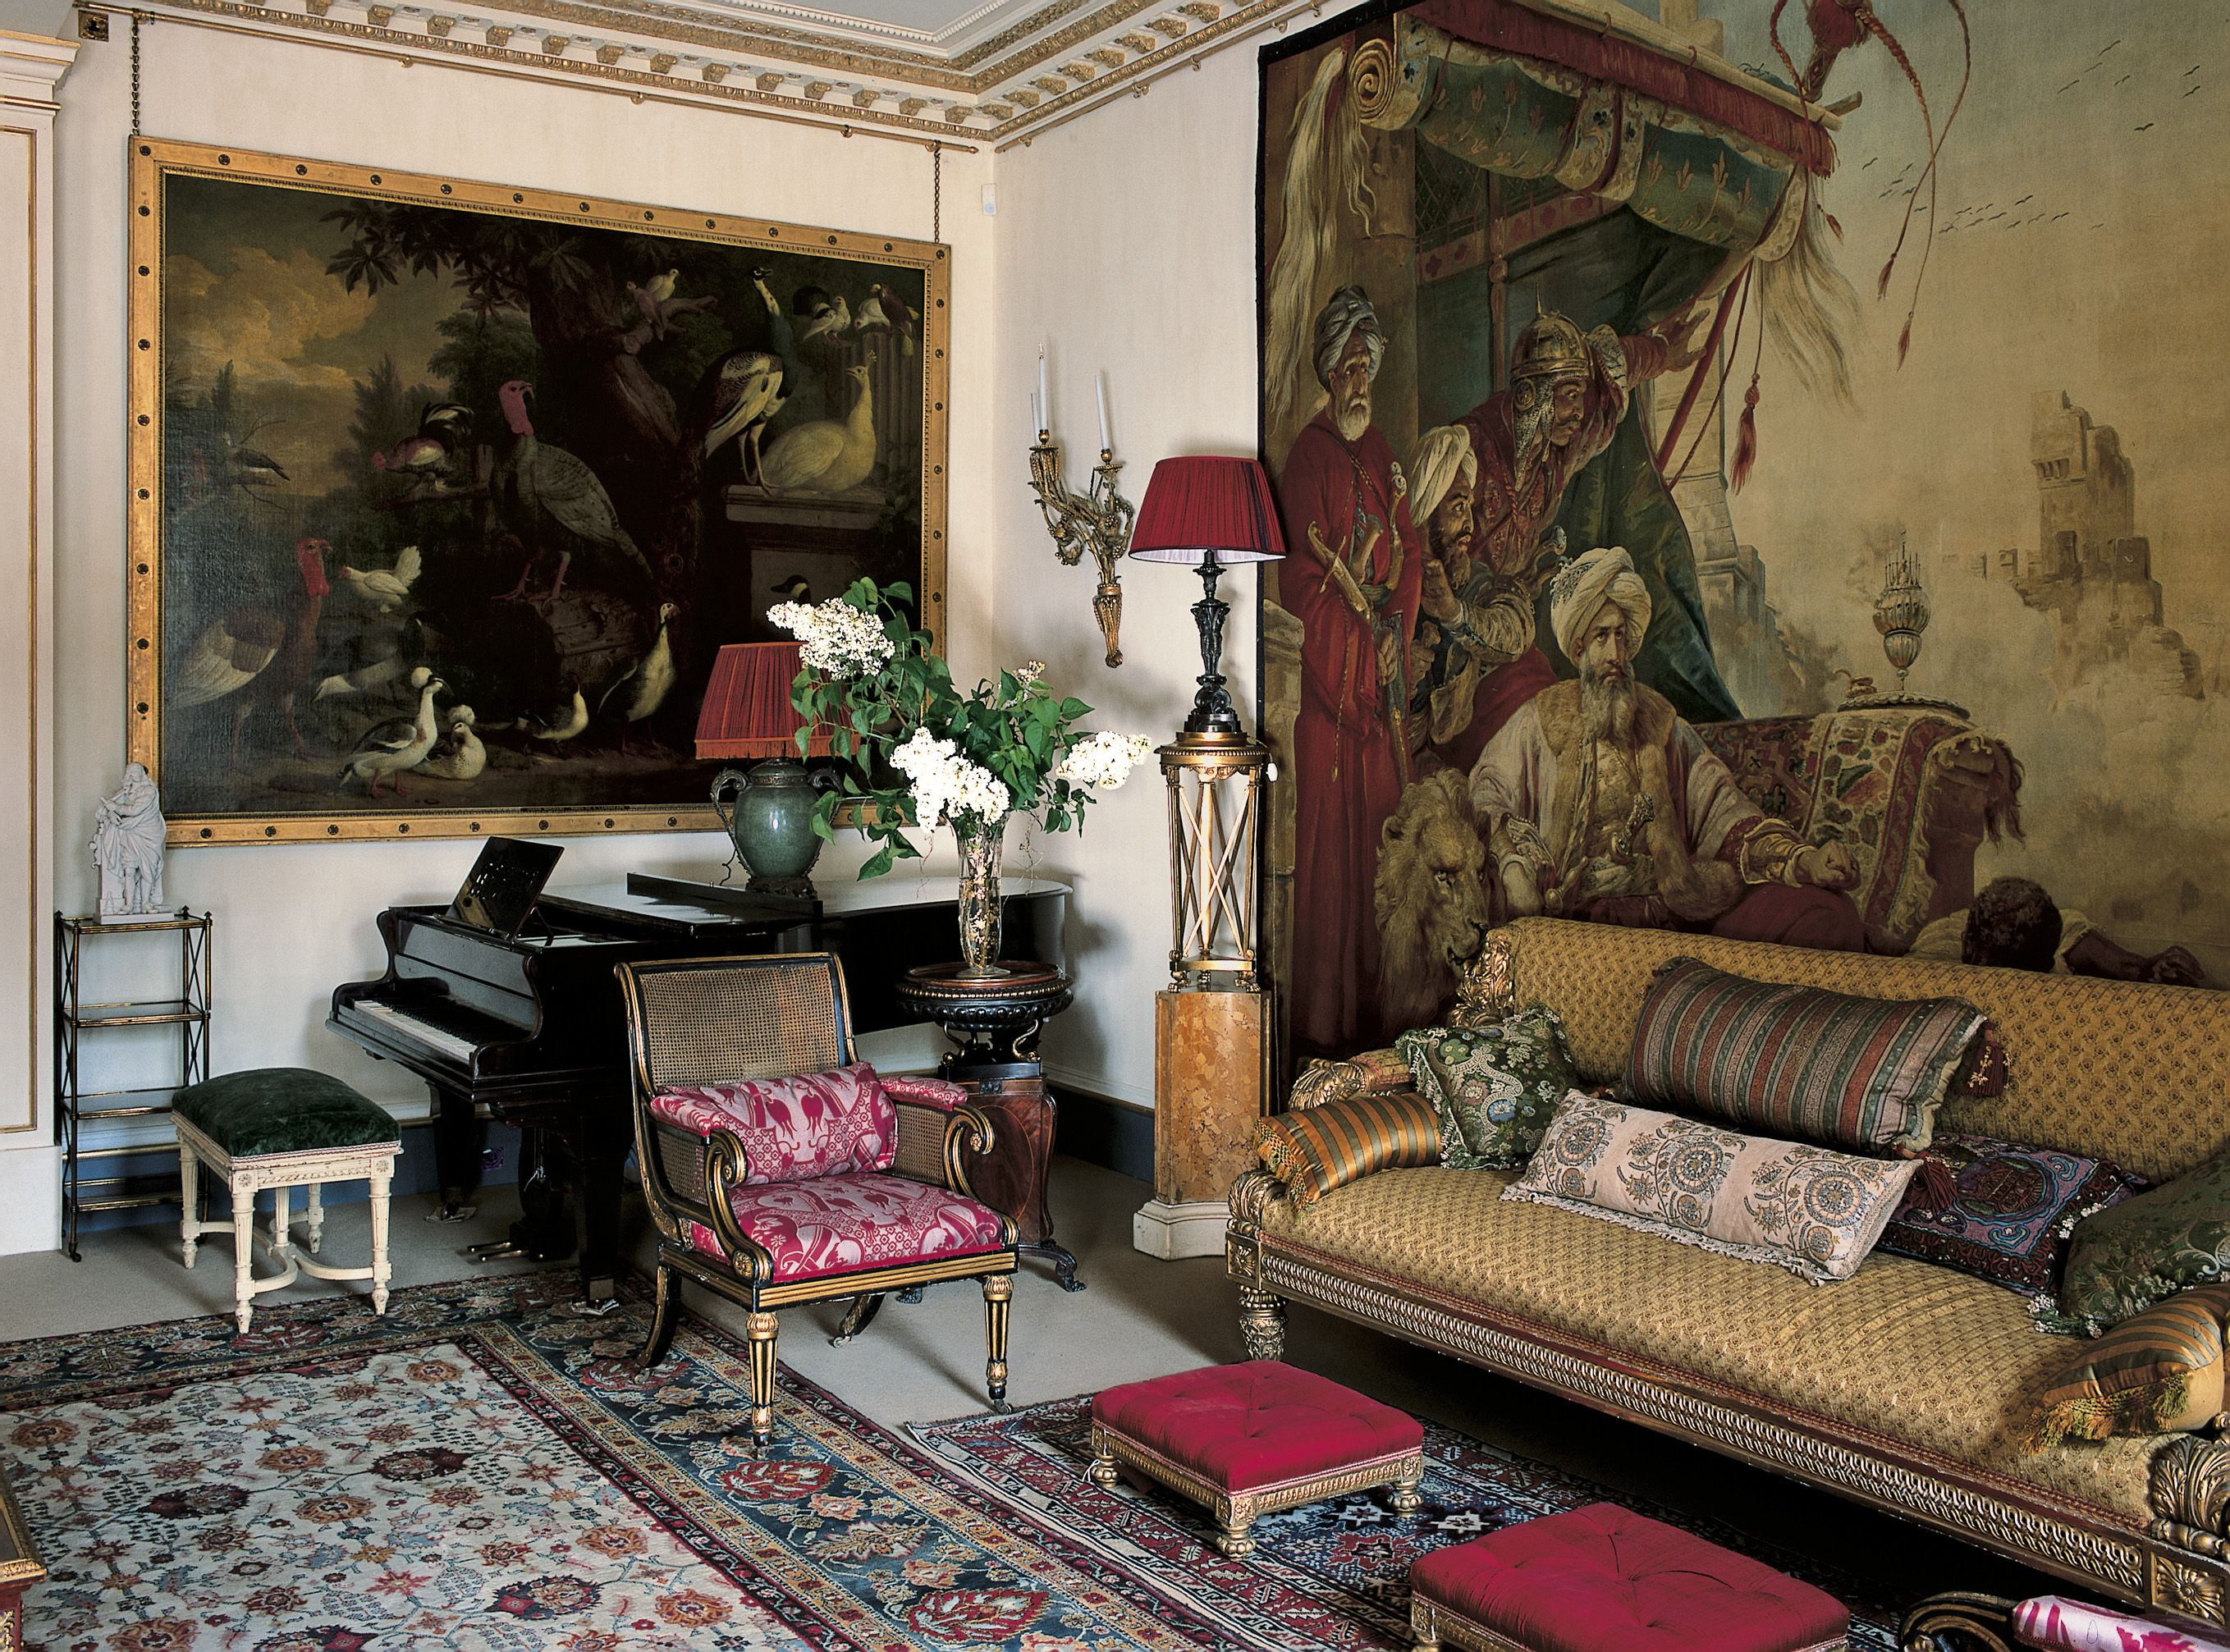 designer robert kime gave the garden room of clarence house the